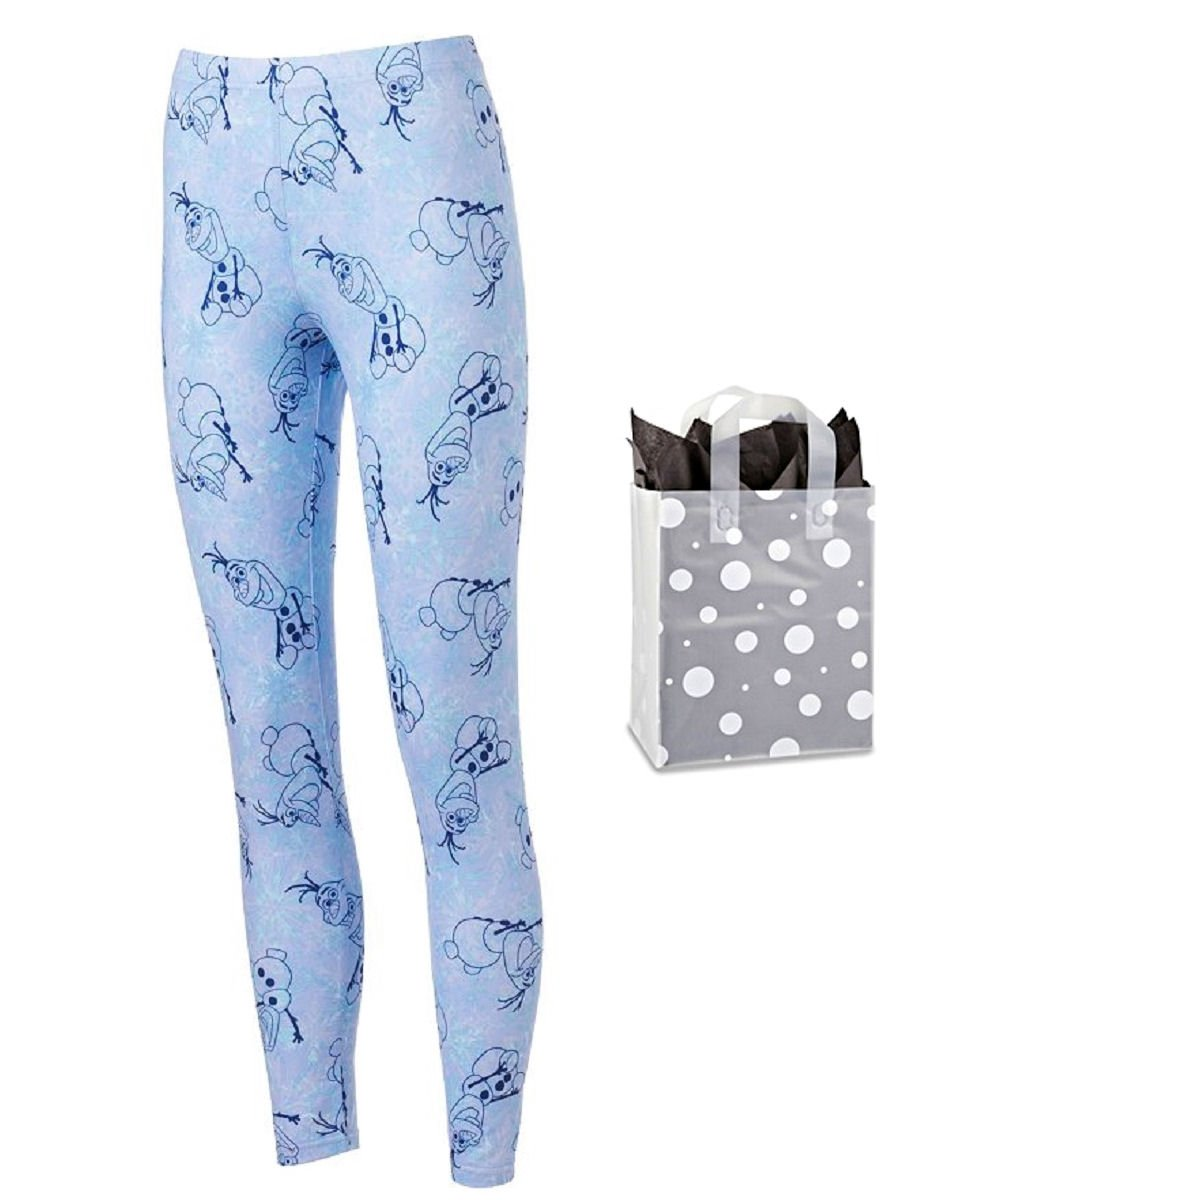 Disney Womens' Juniors Frozen Olaf Leggings & Bag - 2 Piece Gift Set